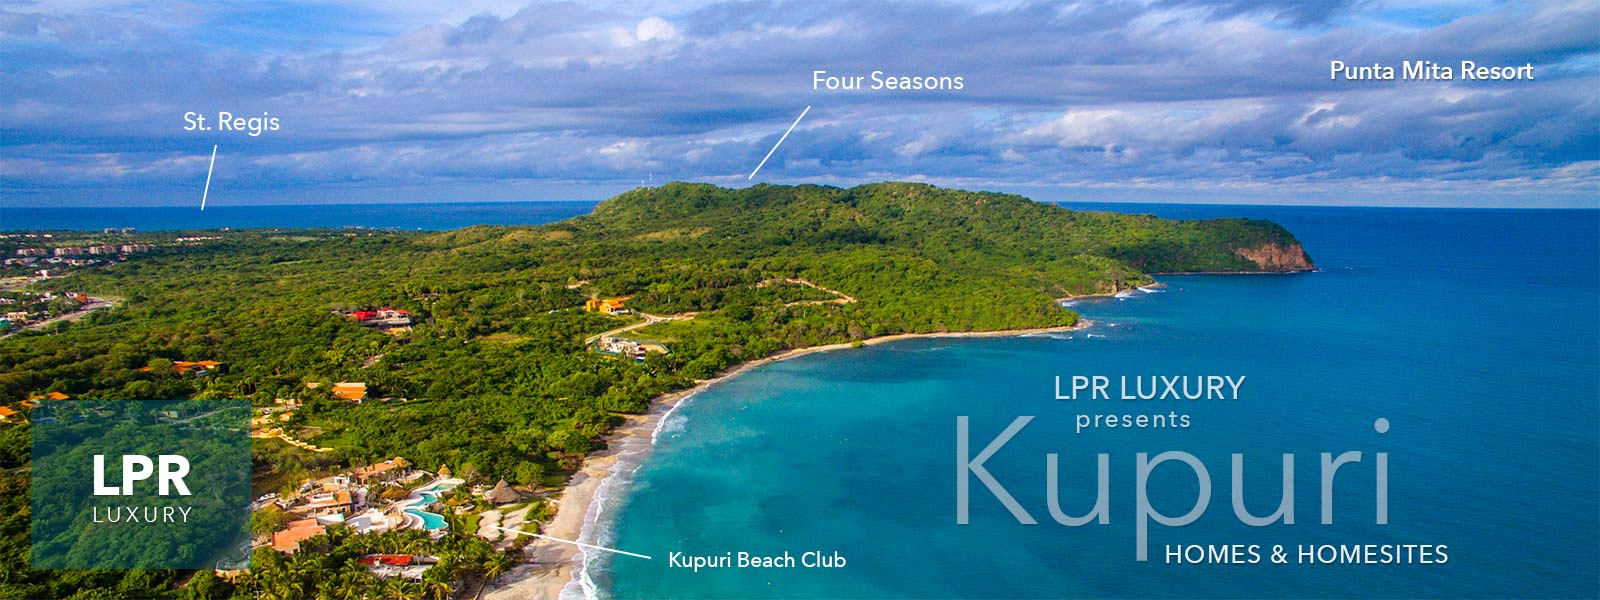 The Kupuri Beach Club - Punta Mita Resort, Riviera Nayarit, Mexico